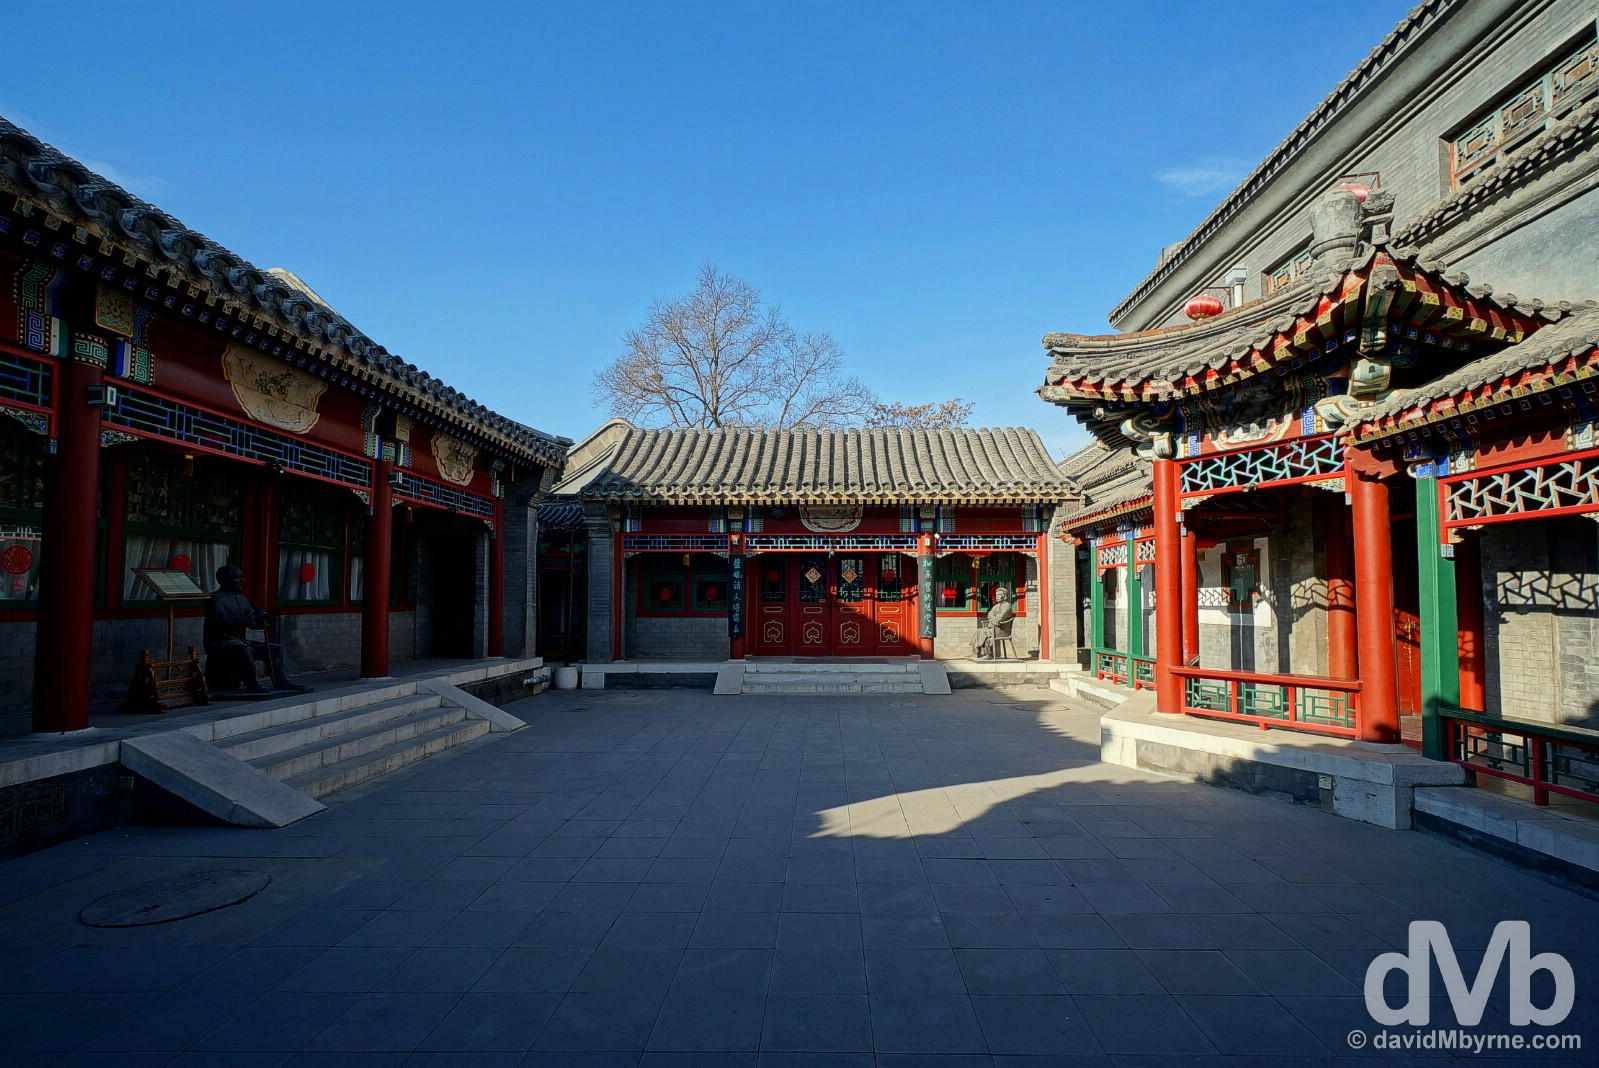 The inner courtyard of the Lu Song Yuan Hotel in the Banchang Hutong in the Dongcheng District of Beijing, China. February 4, 2015.